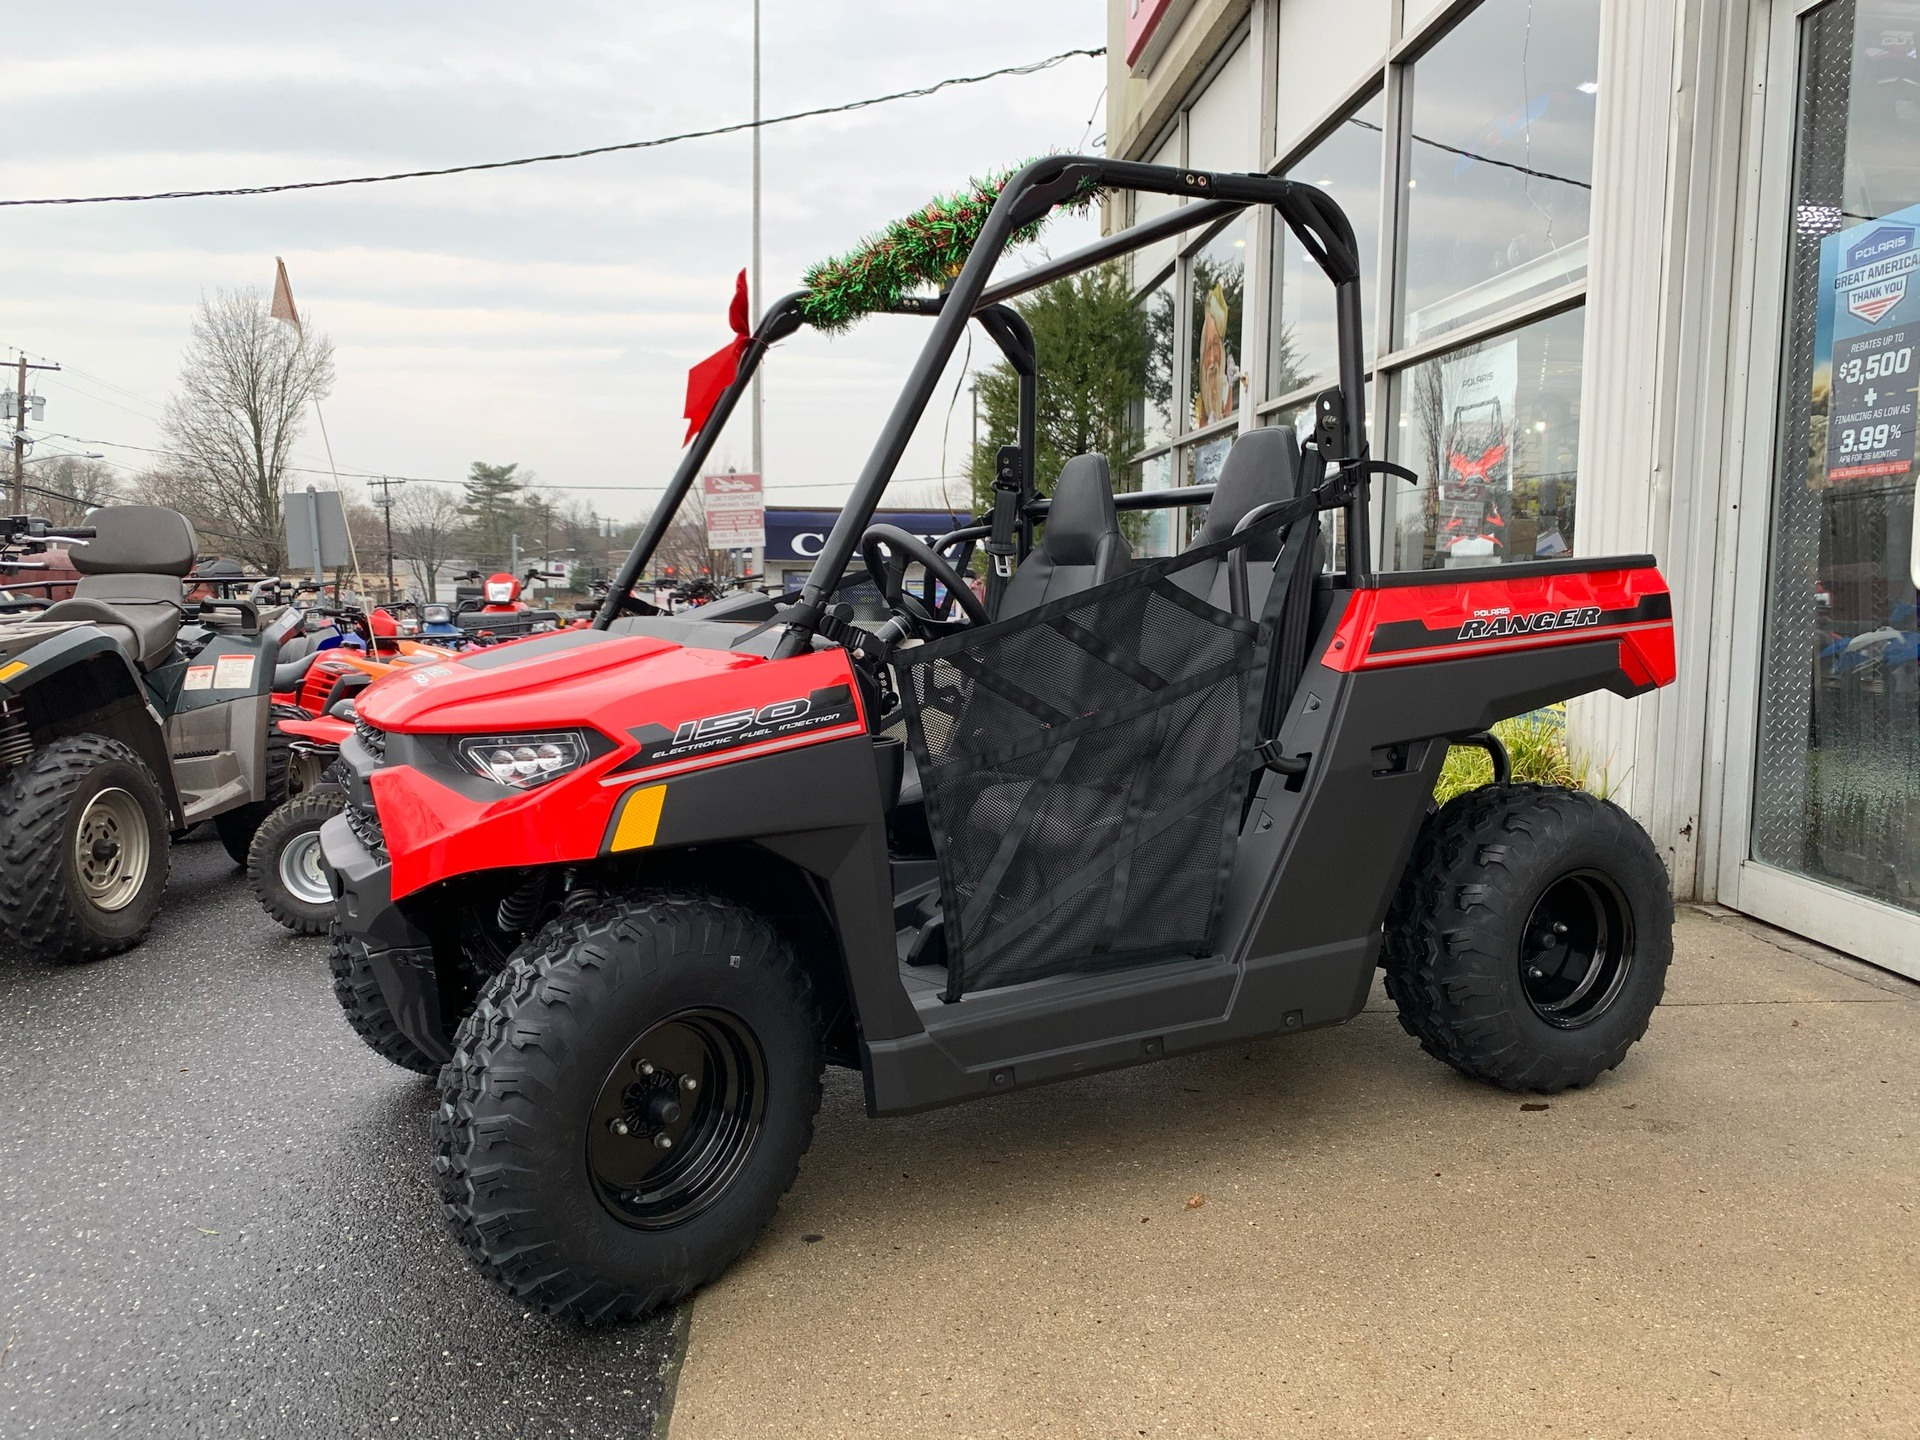 2019 Polaris Ranger 150 EFI in Huntington Station, New York - Photo 3